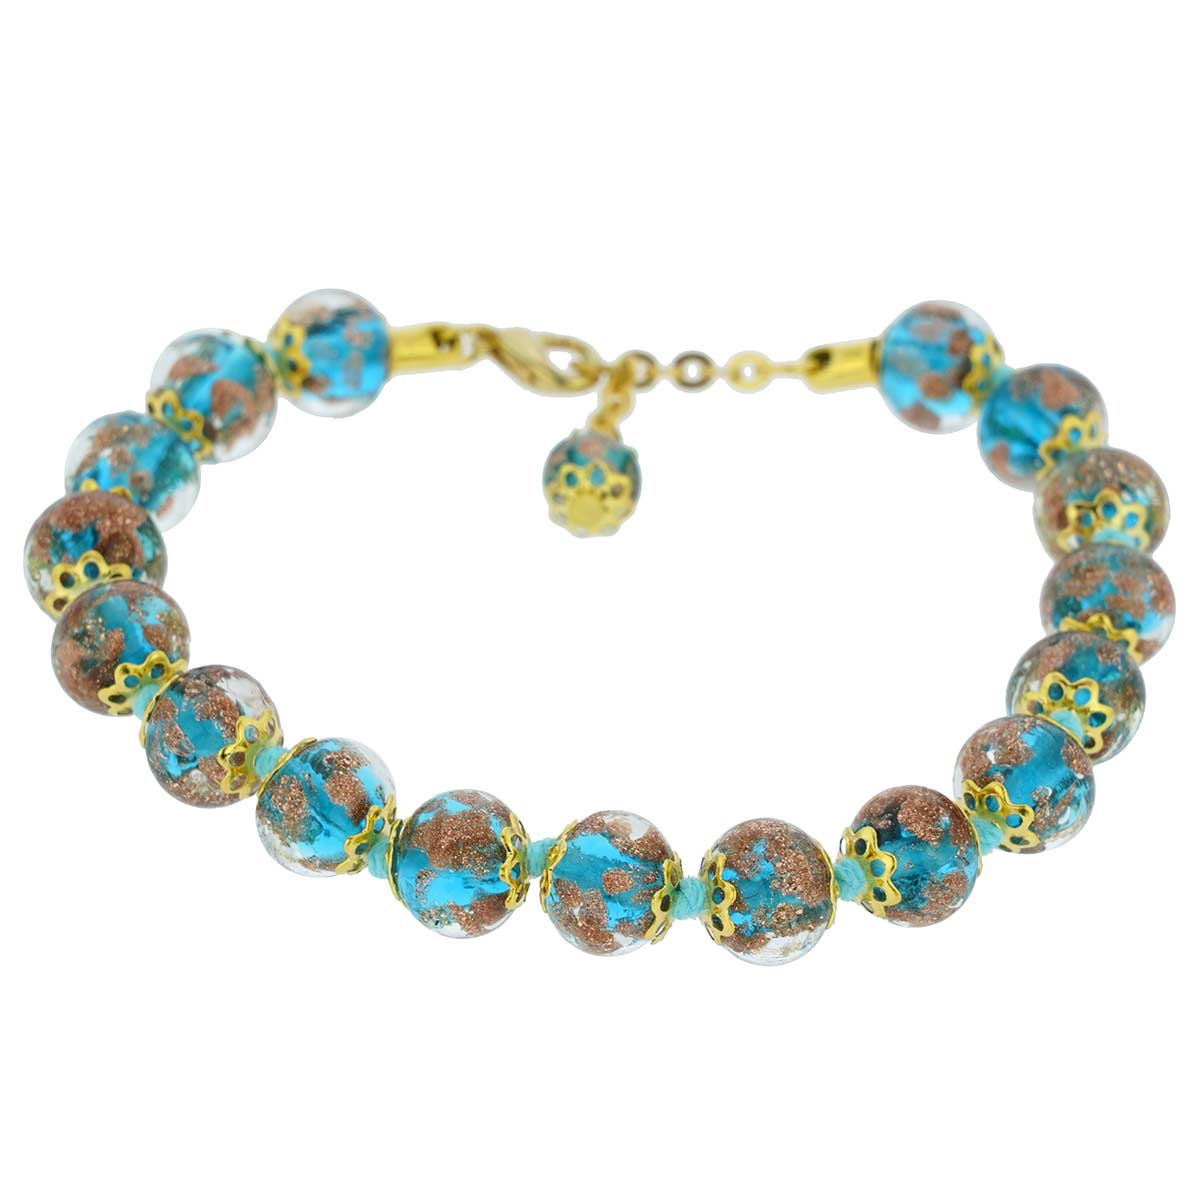 Sommerso Bracelet - Transparent Blue